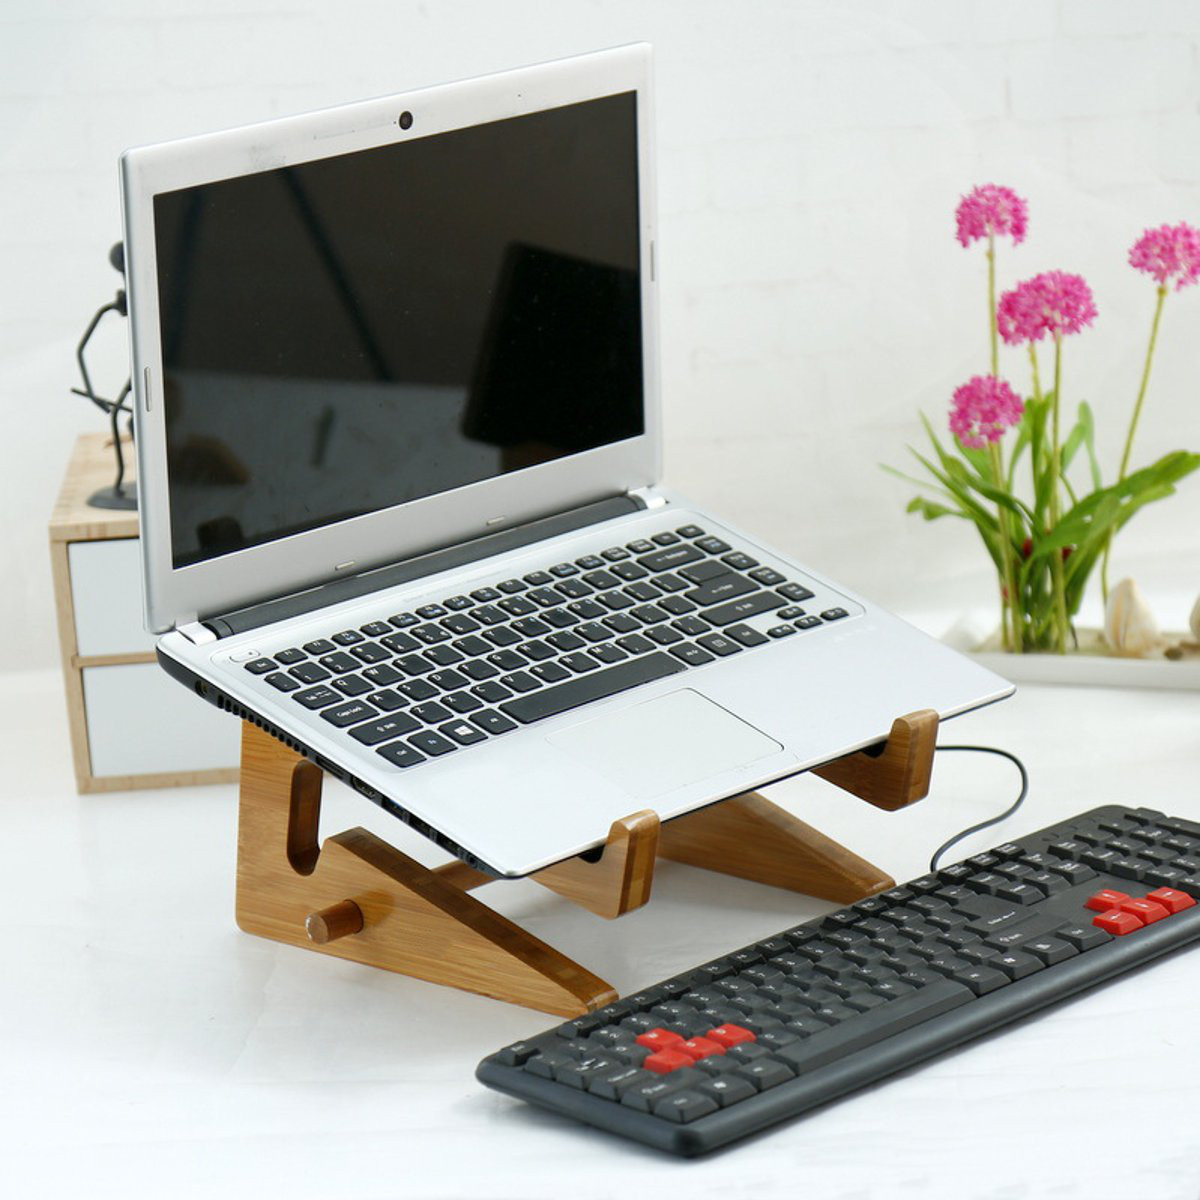 S/M/L Portable Bamboo Laptop Stand Holder Organizer Desk Tablet Notebook Cooling Bracket Home Office Computer Tablet Accessories